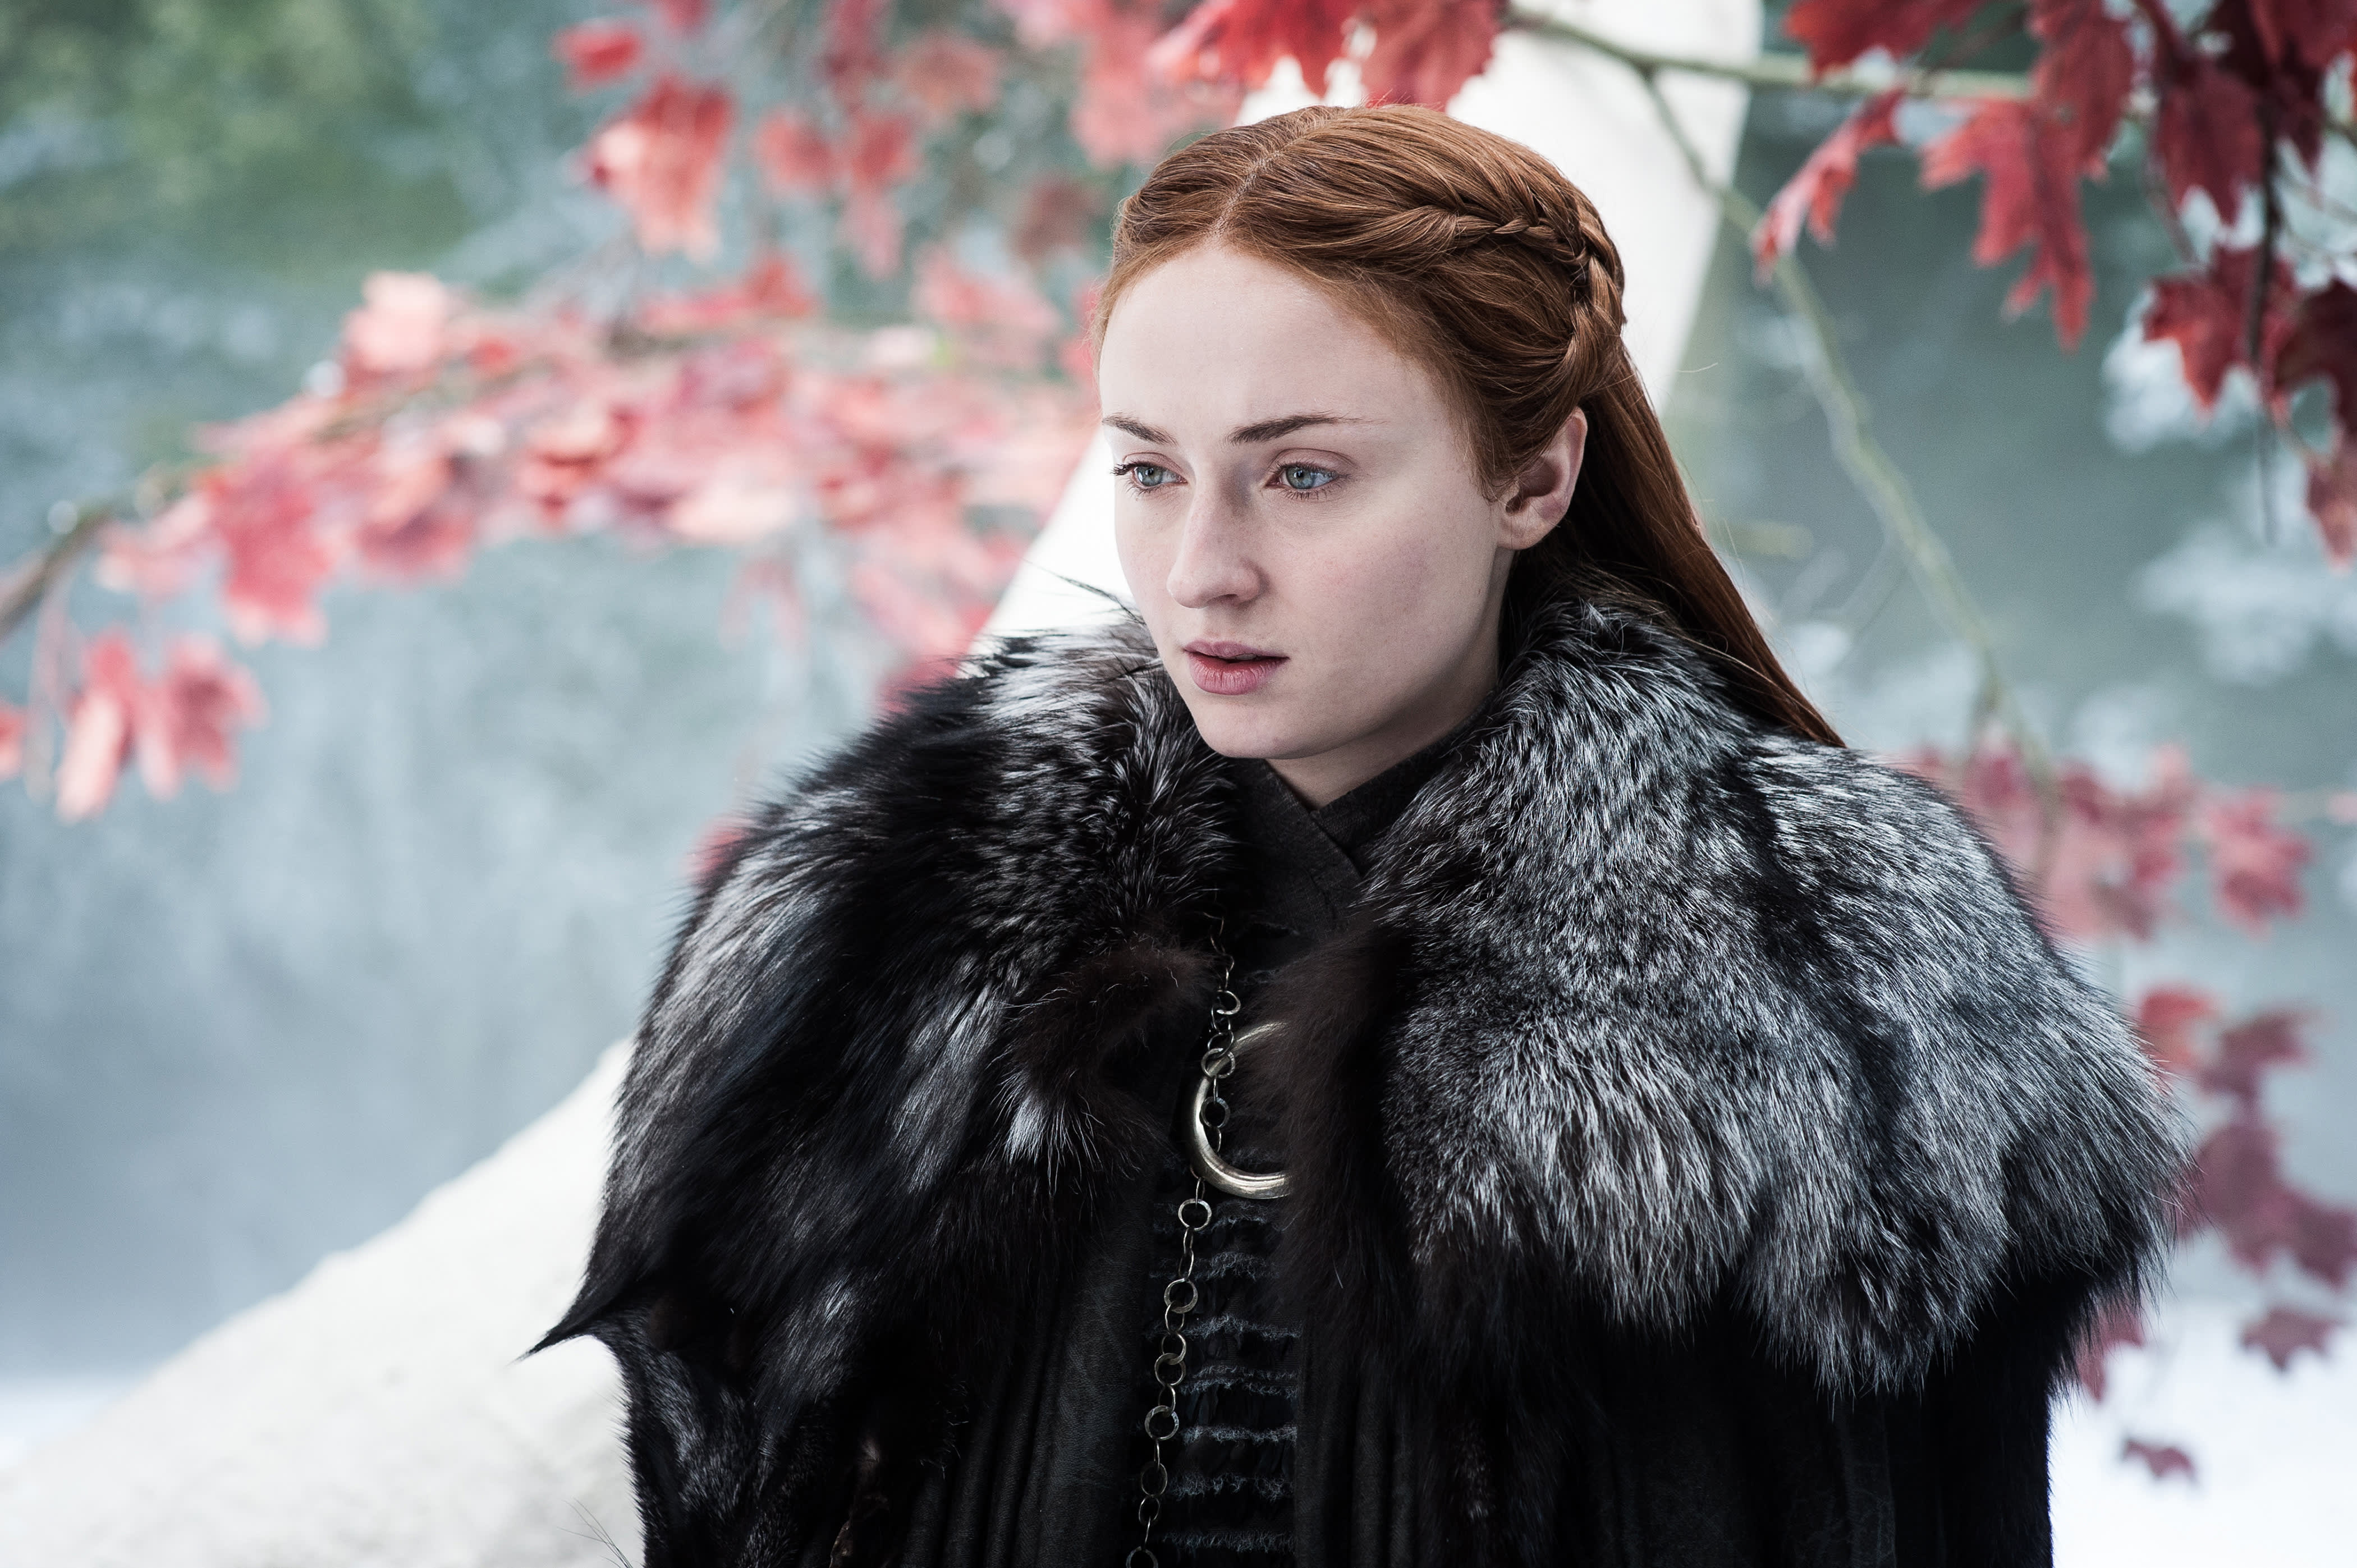 Sansa is the best leader on 'Game of Thrones,' says Columbia Business School professor